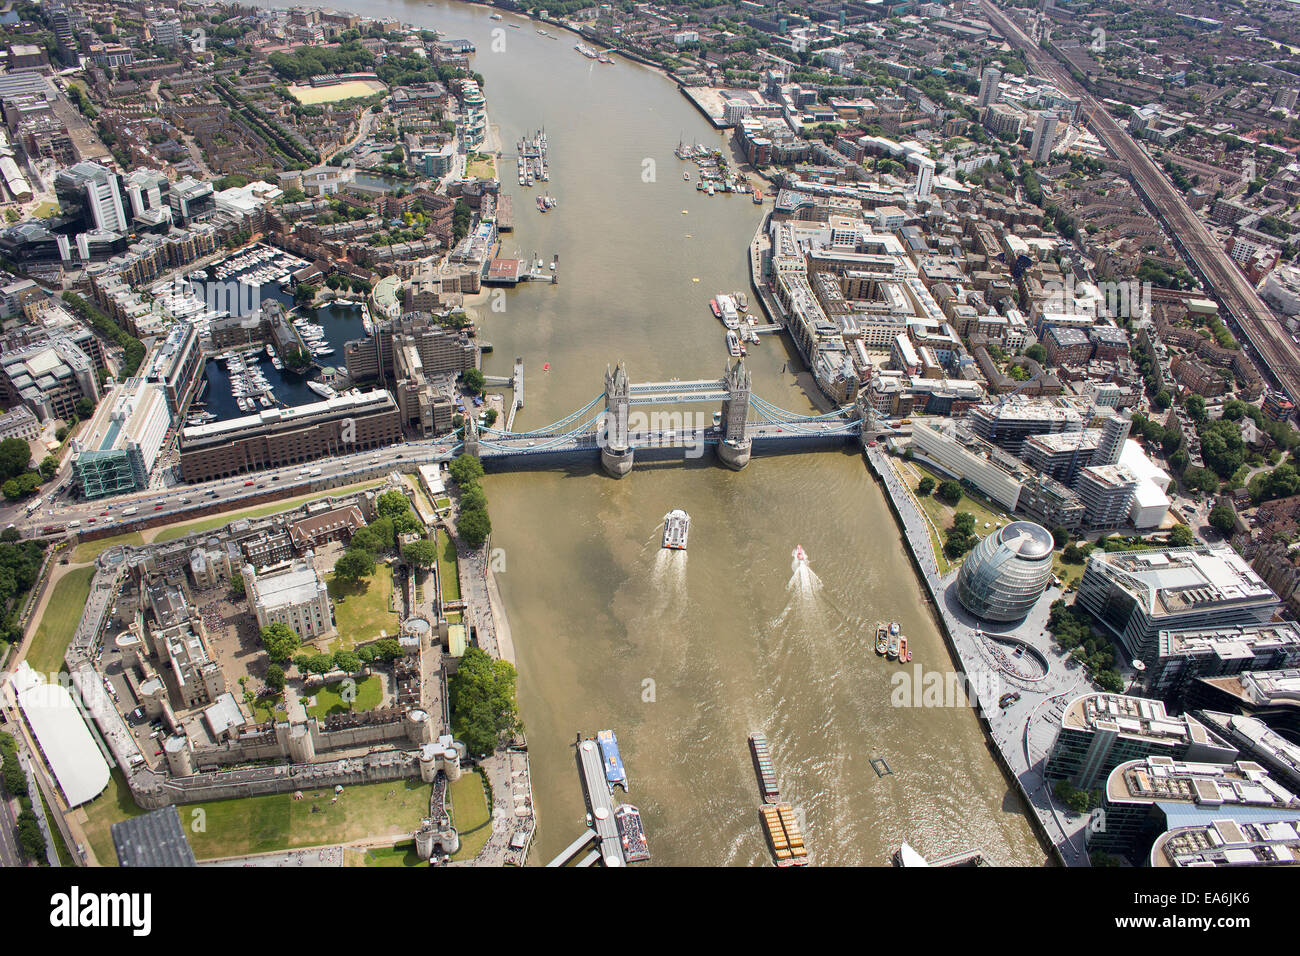 Aerial view of Tower Bridge and city, London, England, UK - Stock Image